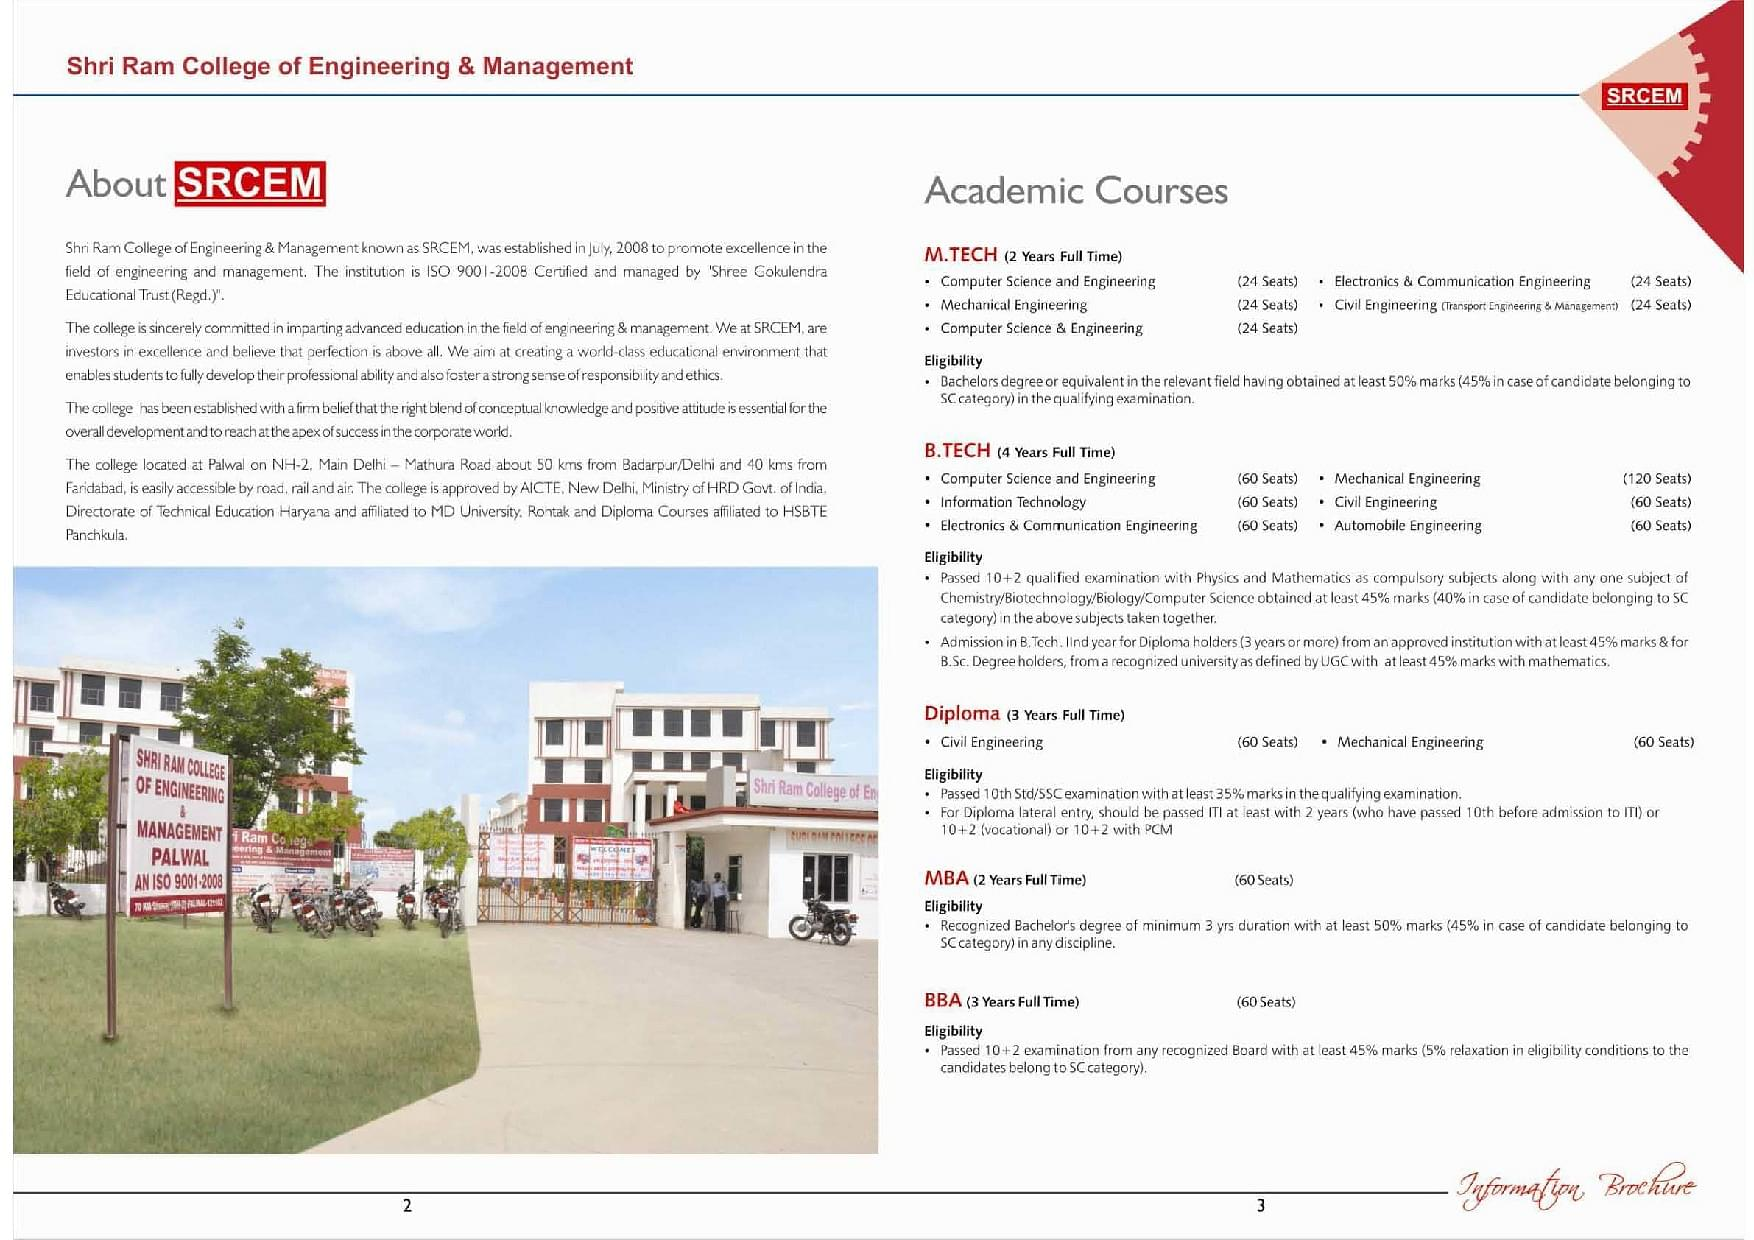 Shri Ram College of Engineering and Management - [SRCEM], Palwal - Admissions, Contact, Website ...